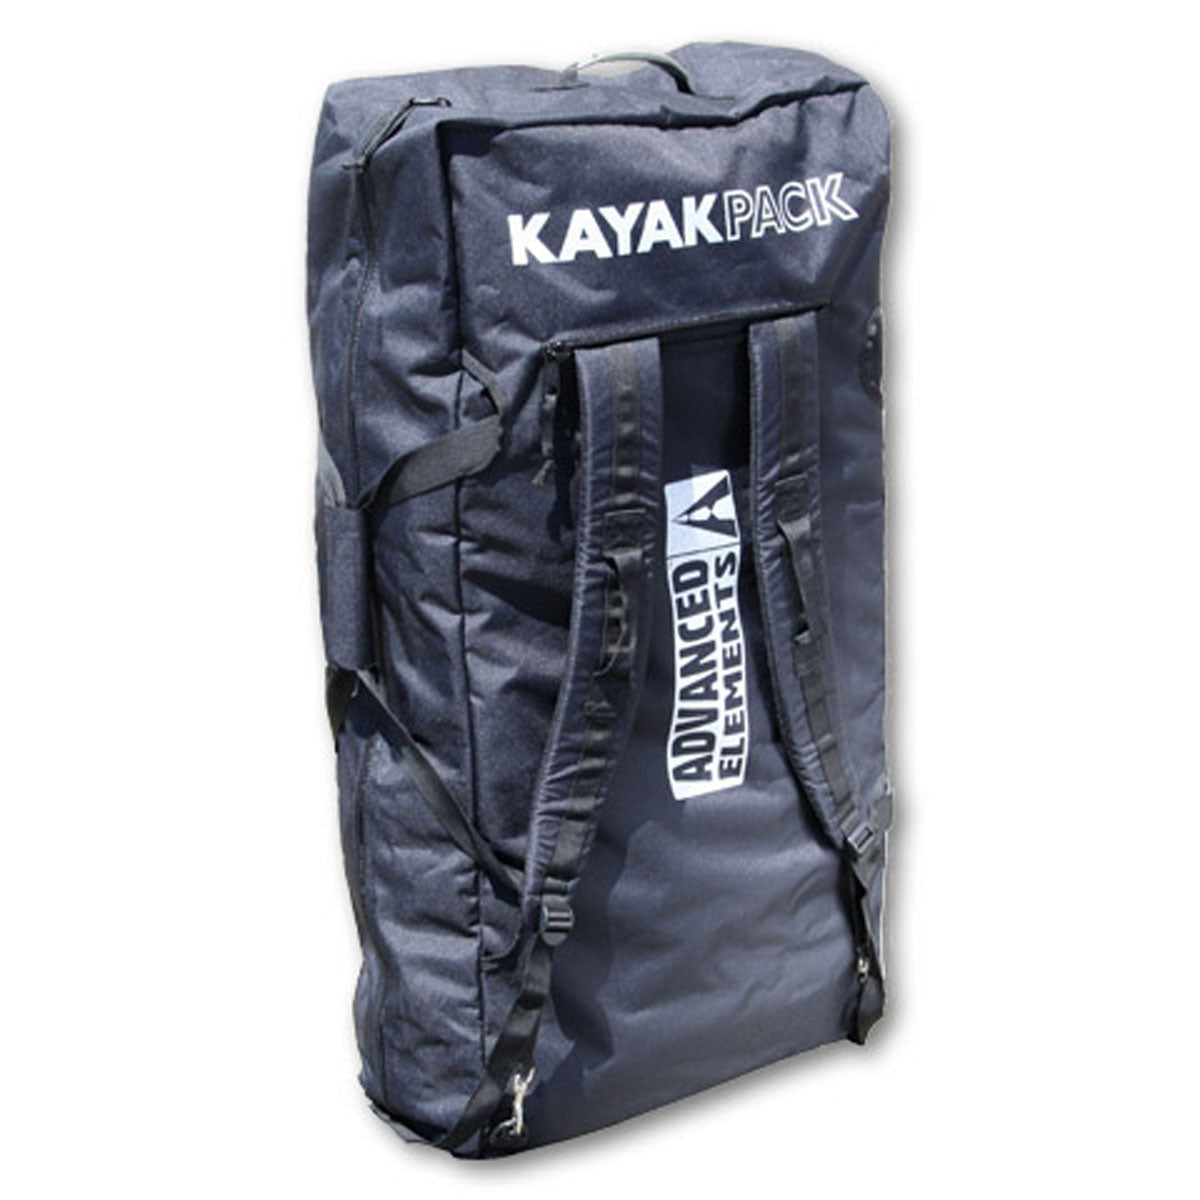 Advanced Elements KayakPack Travel Bag - Kayak Creek